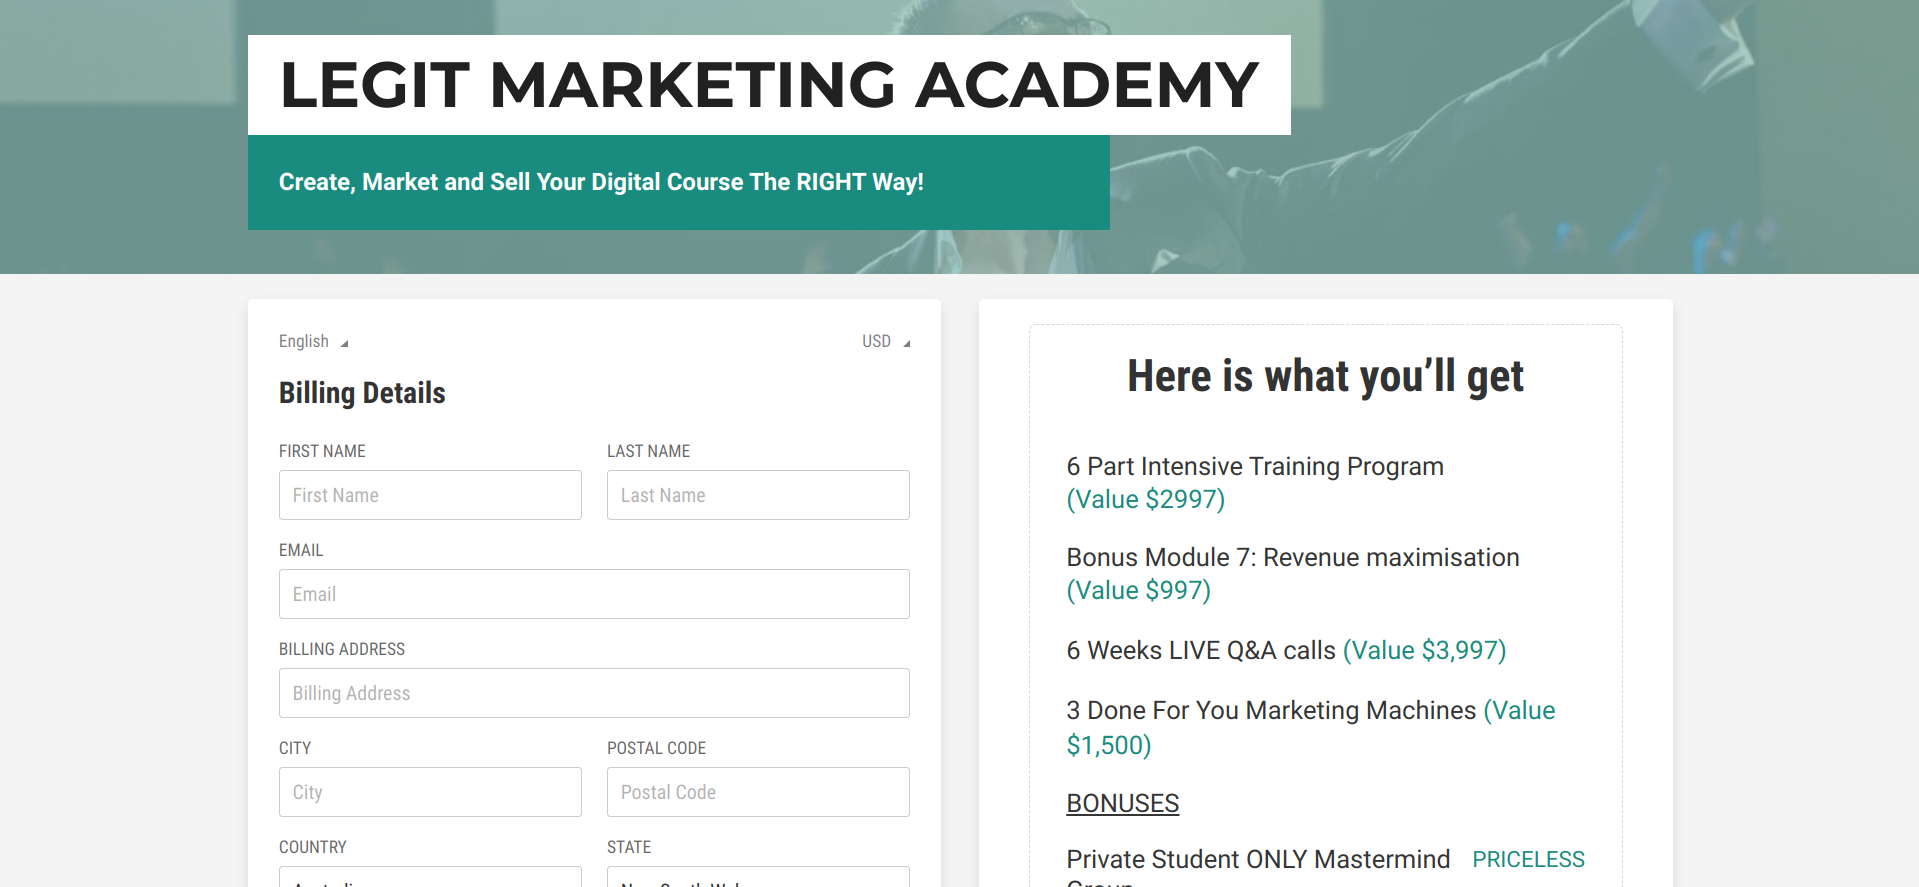 Is Jon Penberthy's Legit Marketing Academy a Scam or Legit